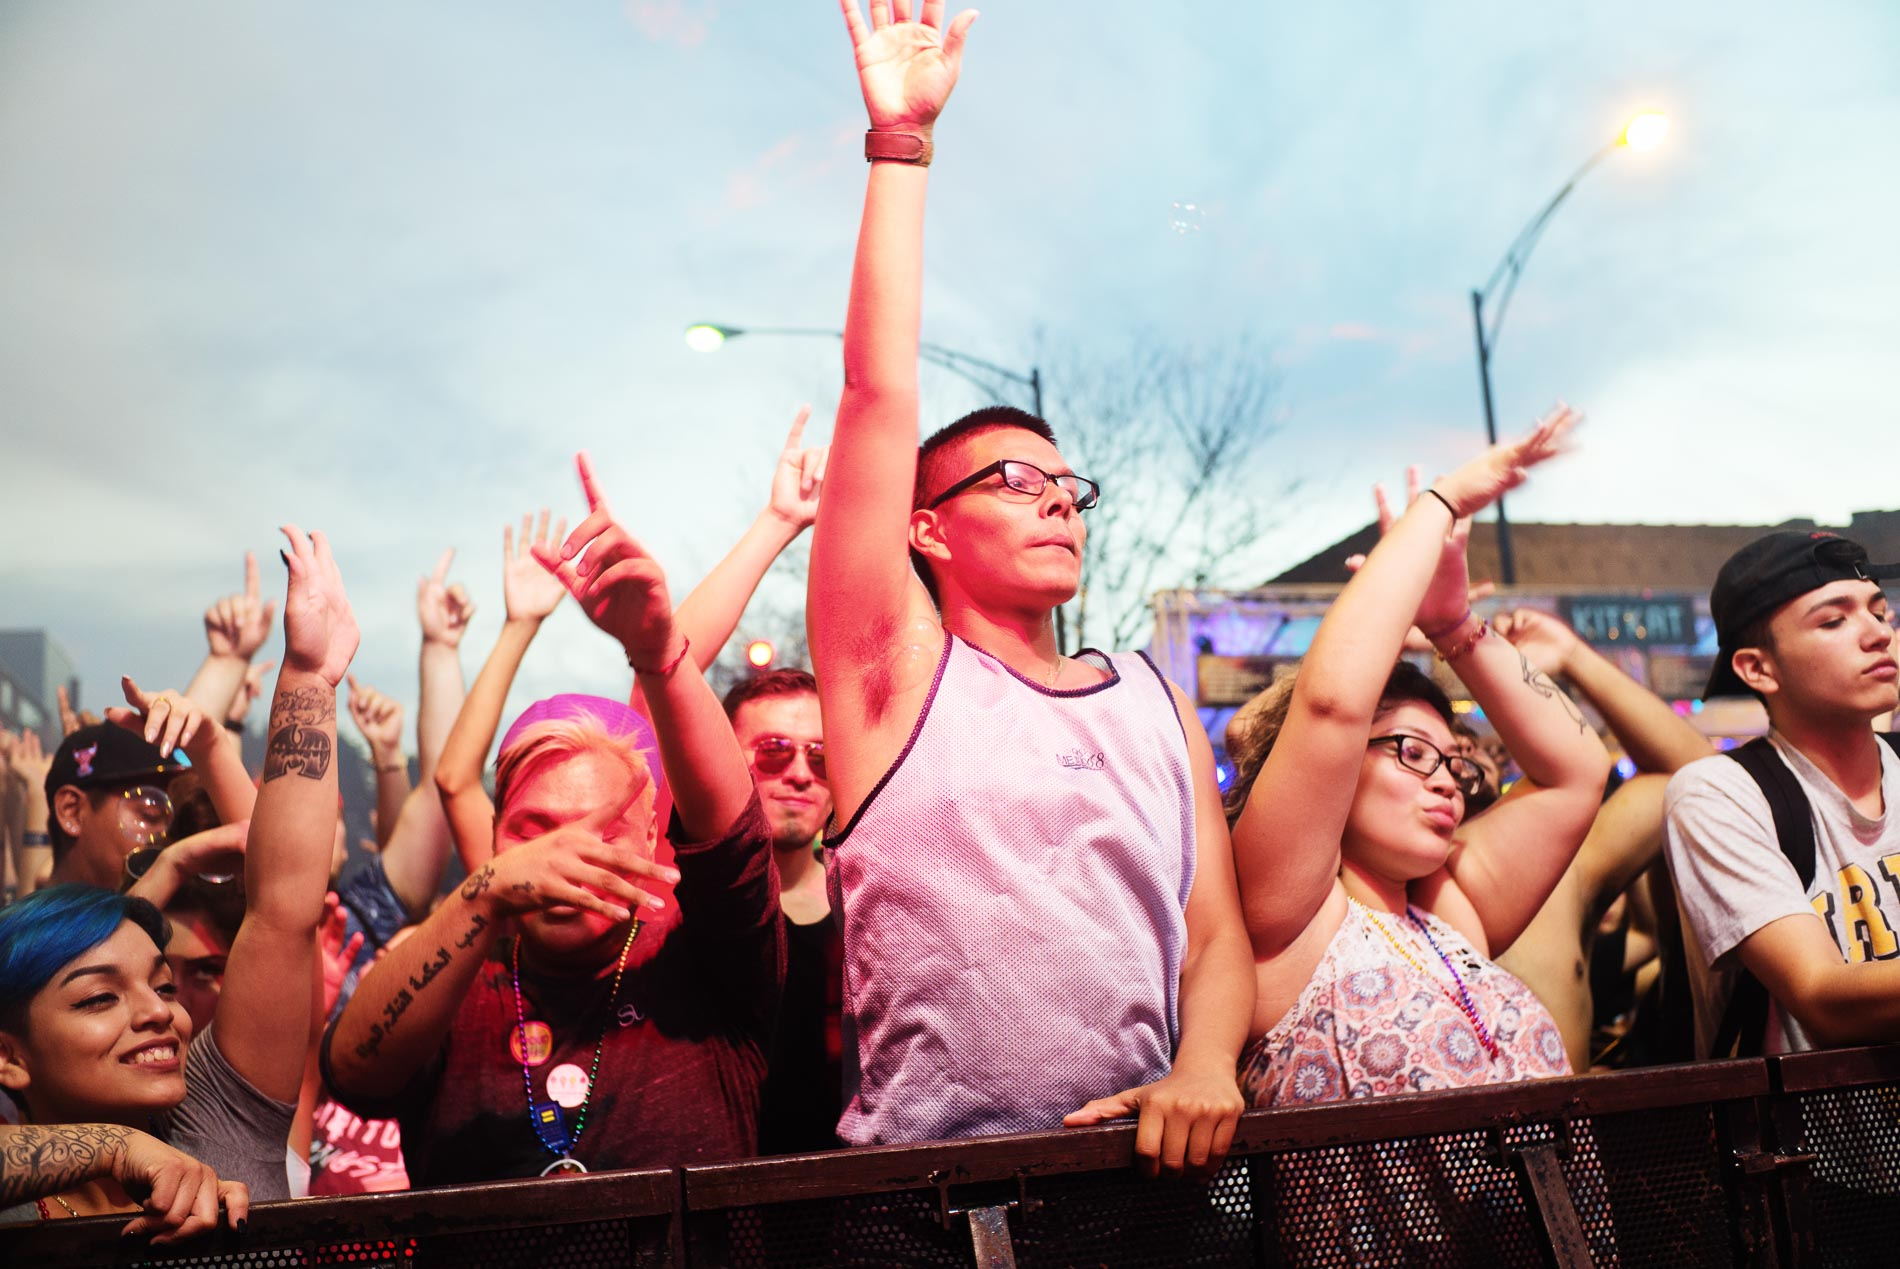 Revelers dance against guard rails, undeterred by the barrier.